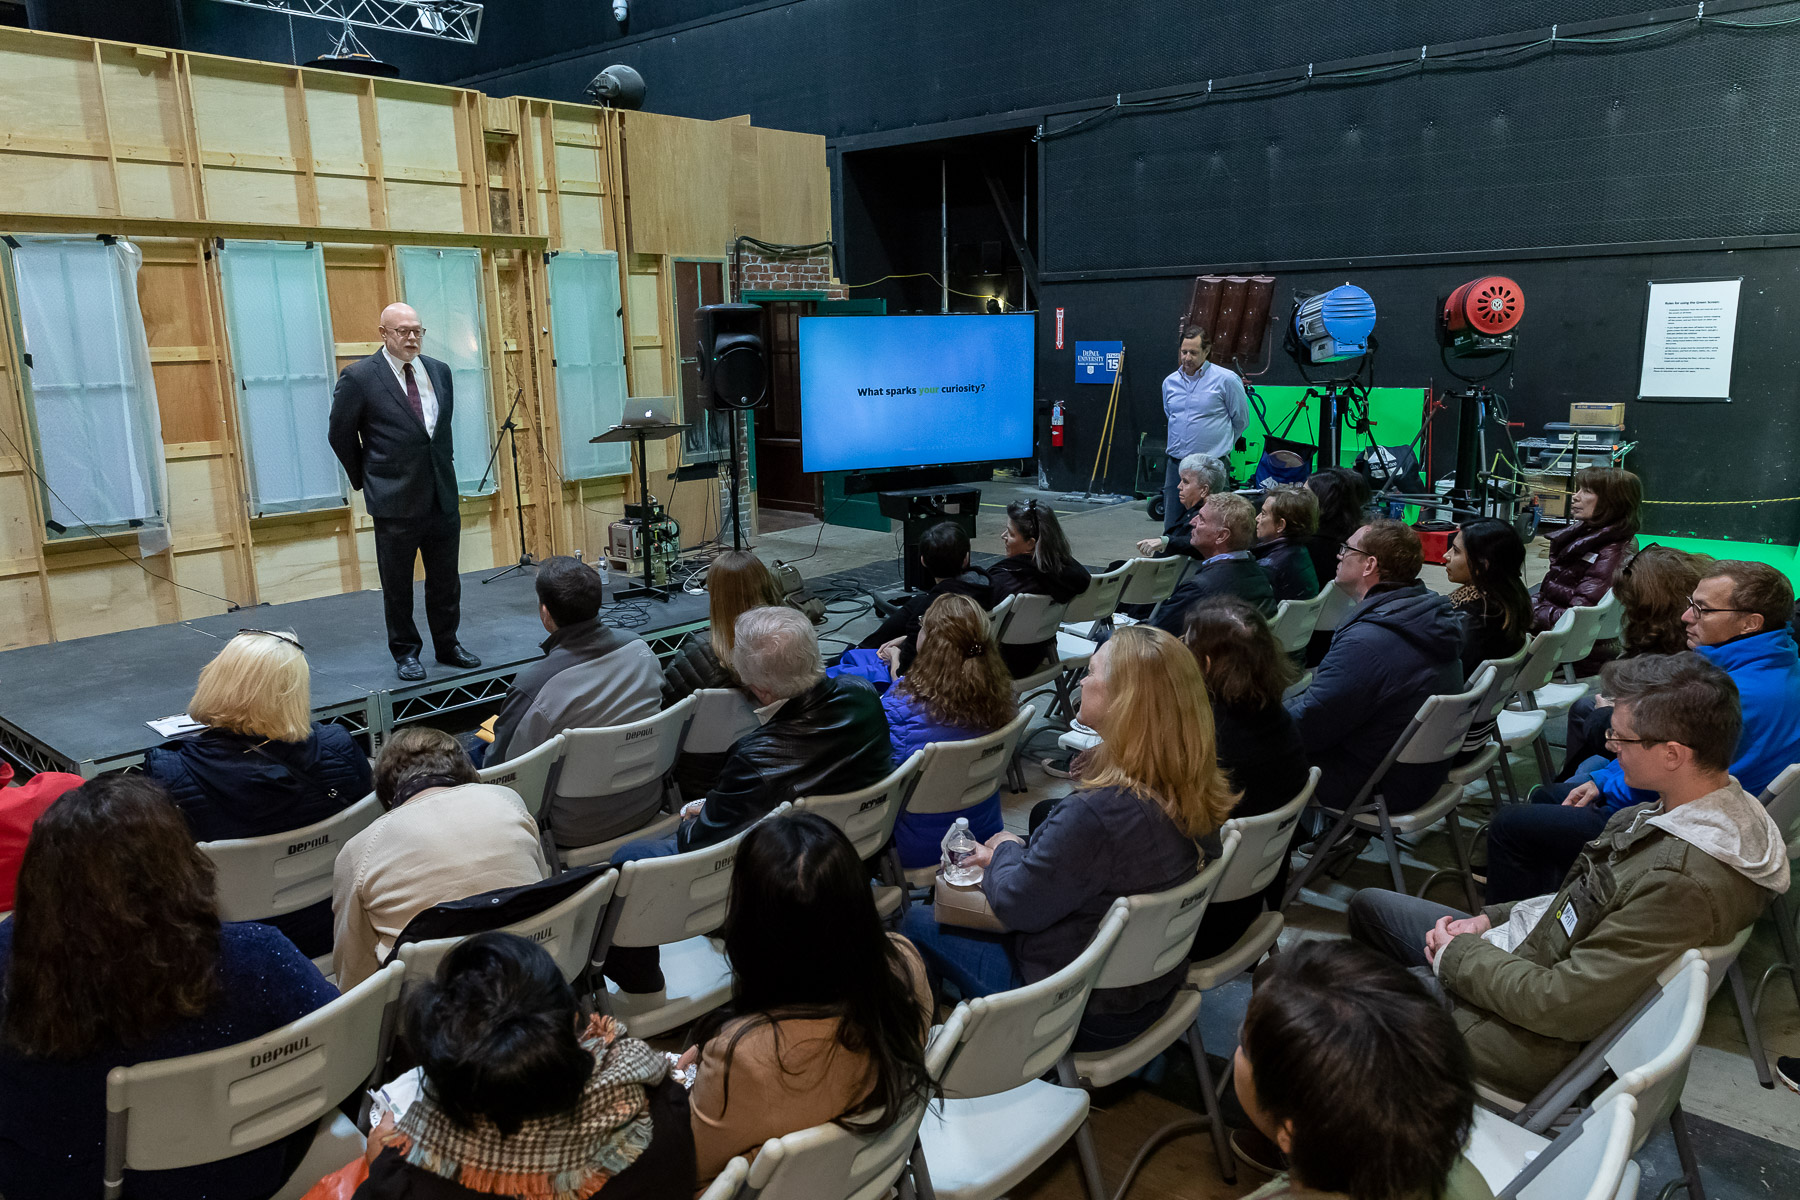 David Miller, dean of the College of Computing and Digital Media, speaks during the Chicago Ideas Week Lab: Behind the Scenes at Cinespace with DePaul University, Monday, Oct. 14, 2019, at Cinespace Chicago Film Studios on Chicago's West Side. (DePaul University/Jeff Carrion)